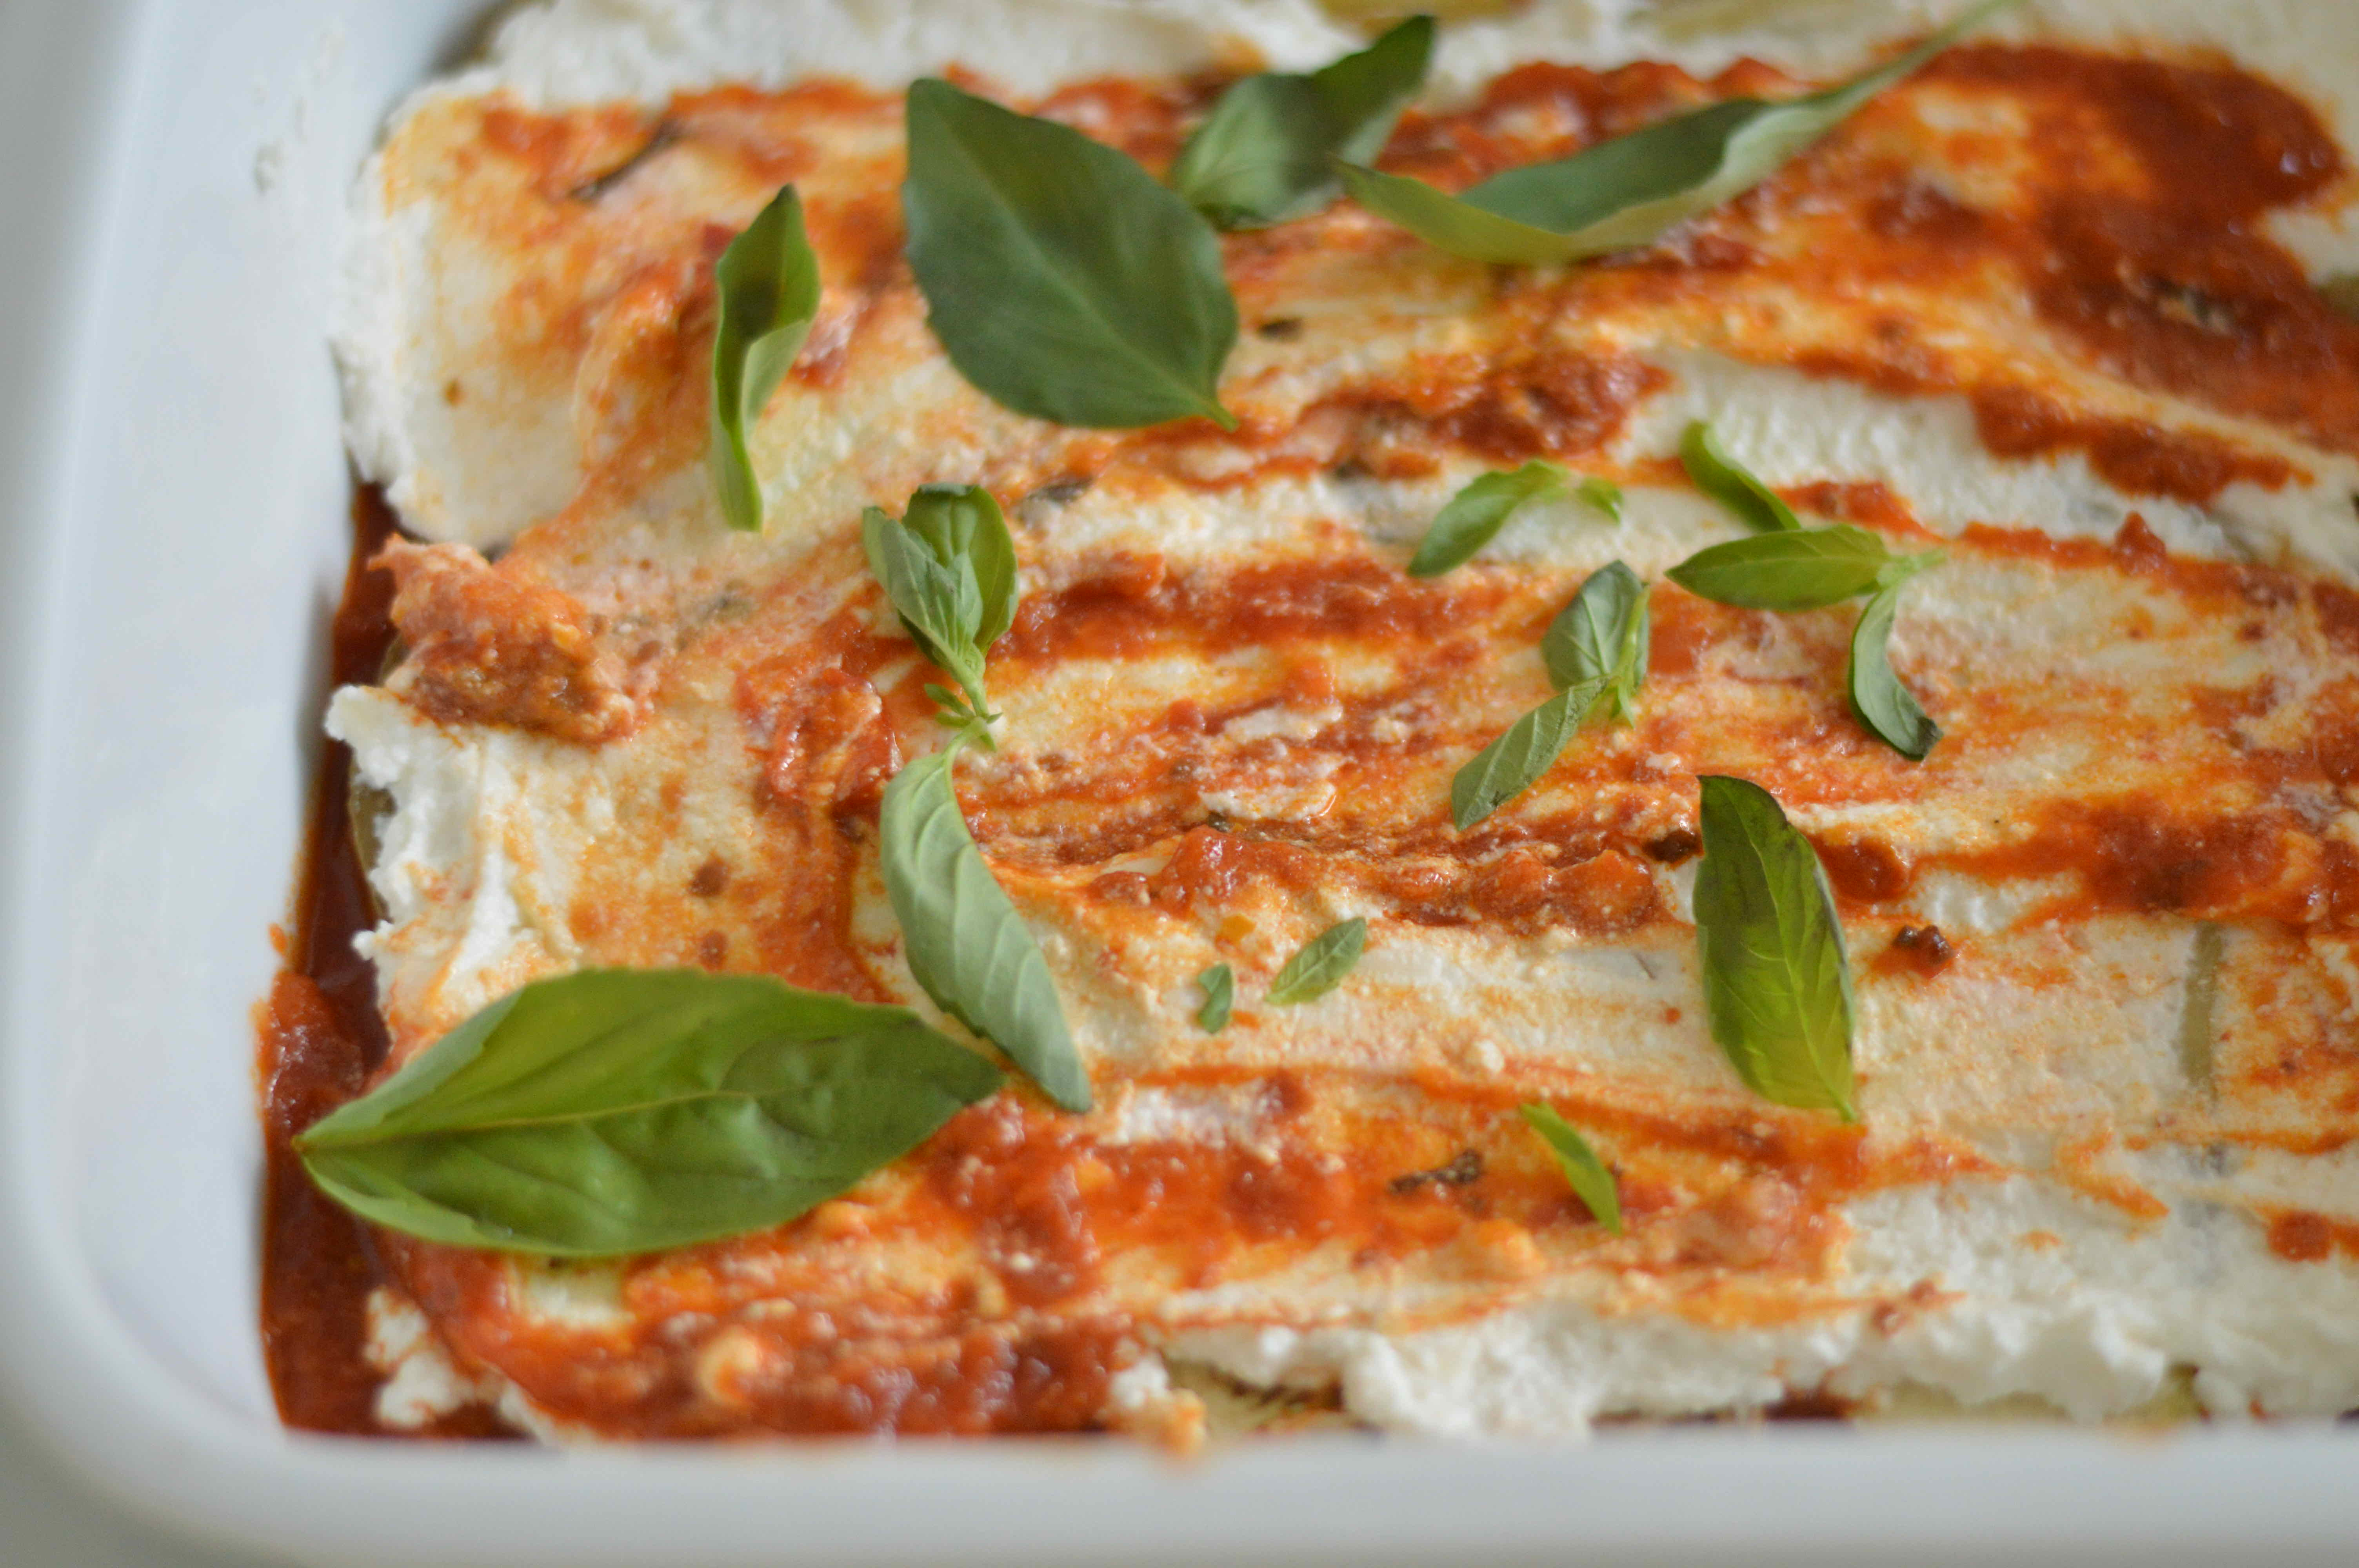 Aubergine (eggplant) and ricotta layers with tomato sauce